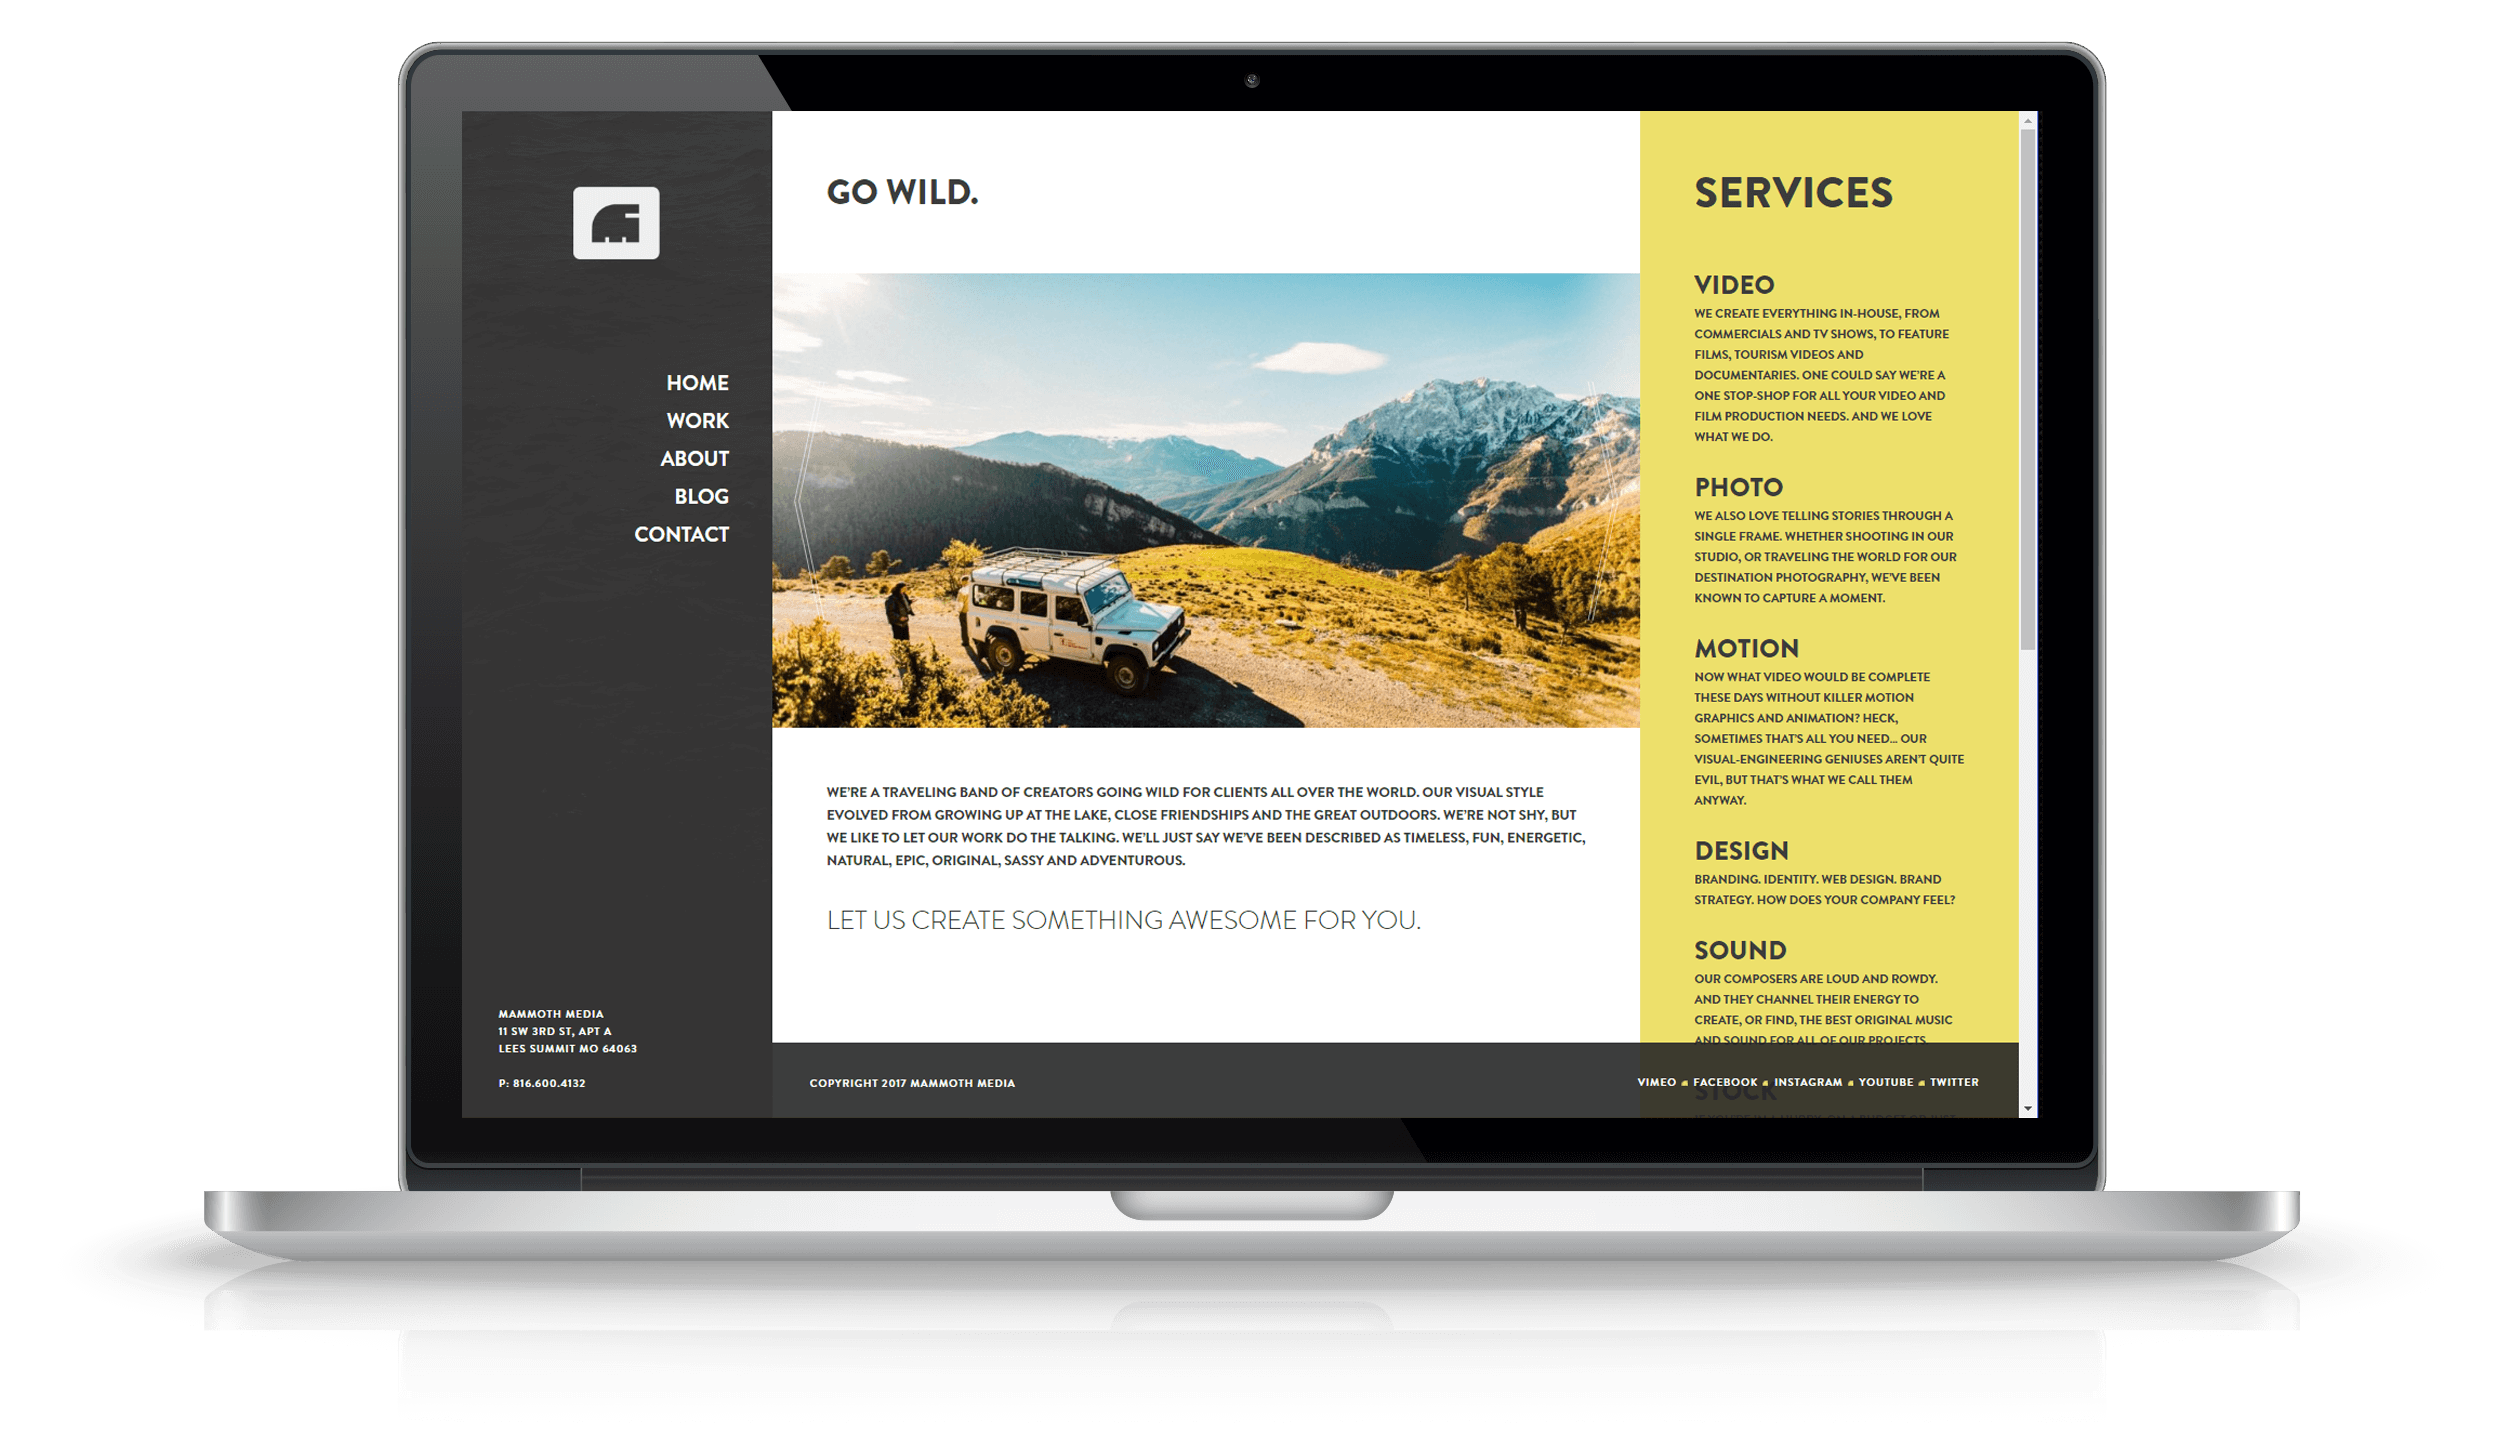 Pixelnation Project: Mammoth Media Website - About Page